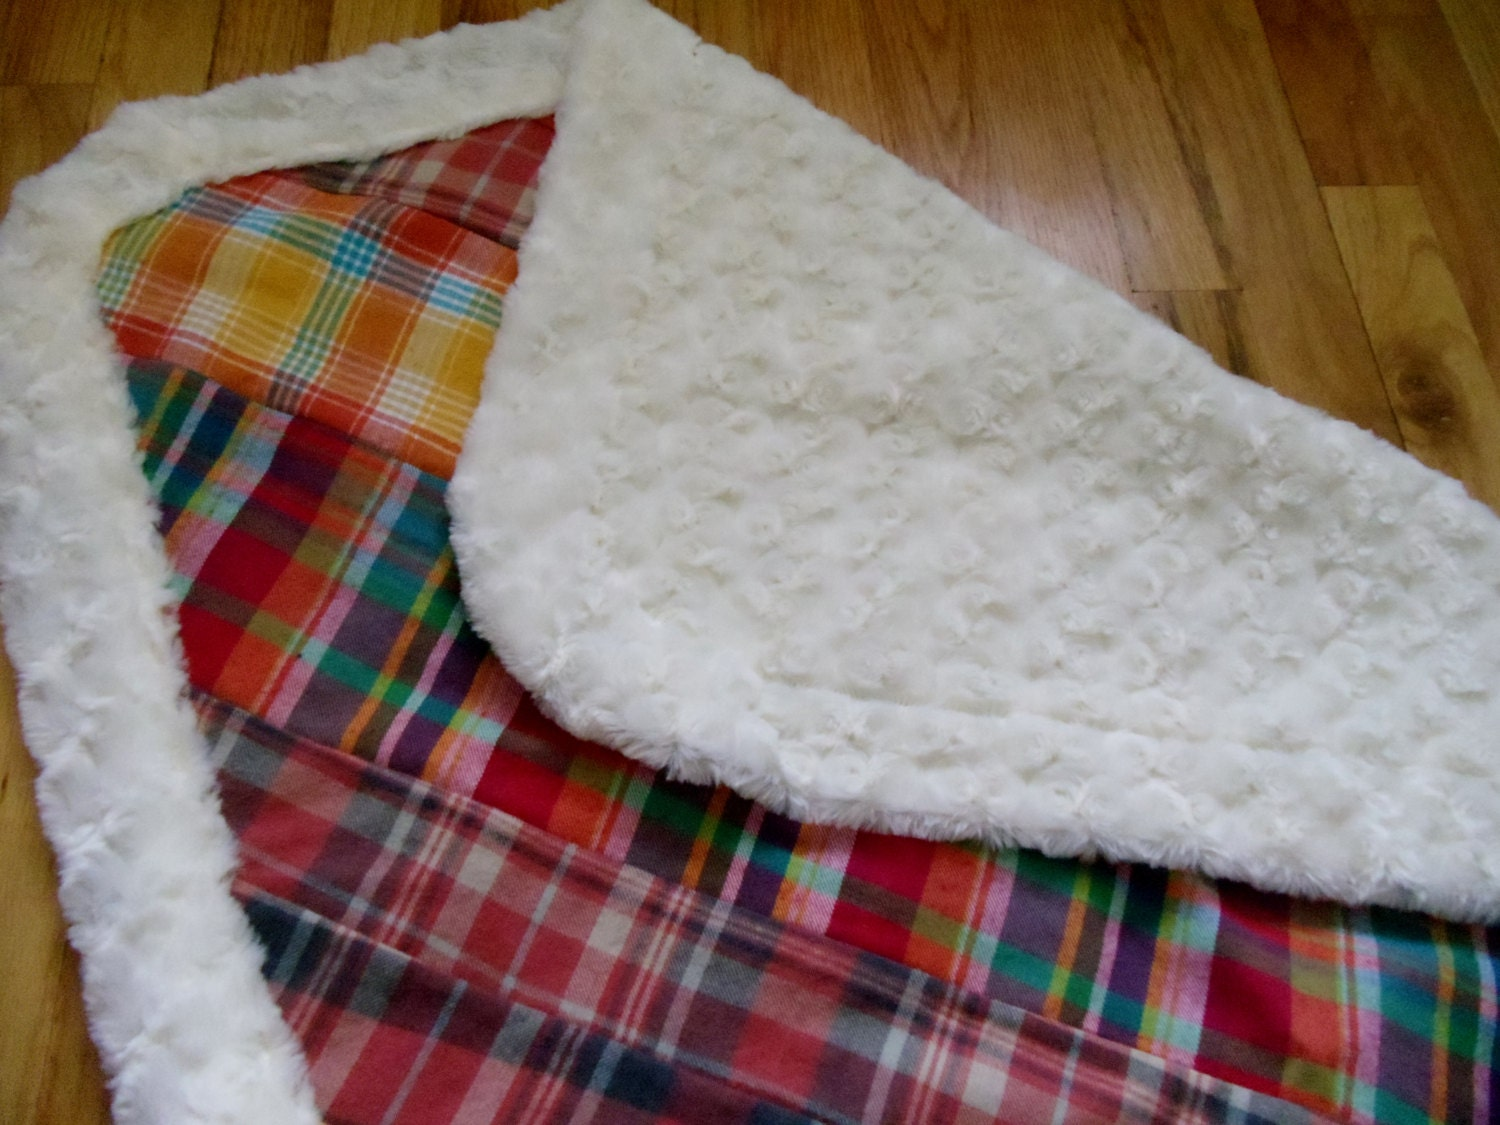 Plaid Baby Quilt: Baby Quilt Madras Plaid Flannel Blanket Minky